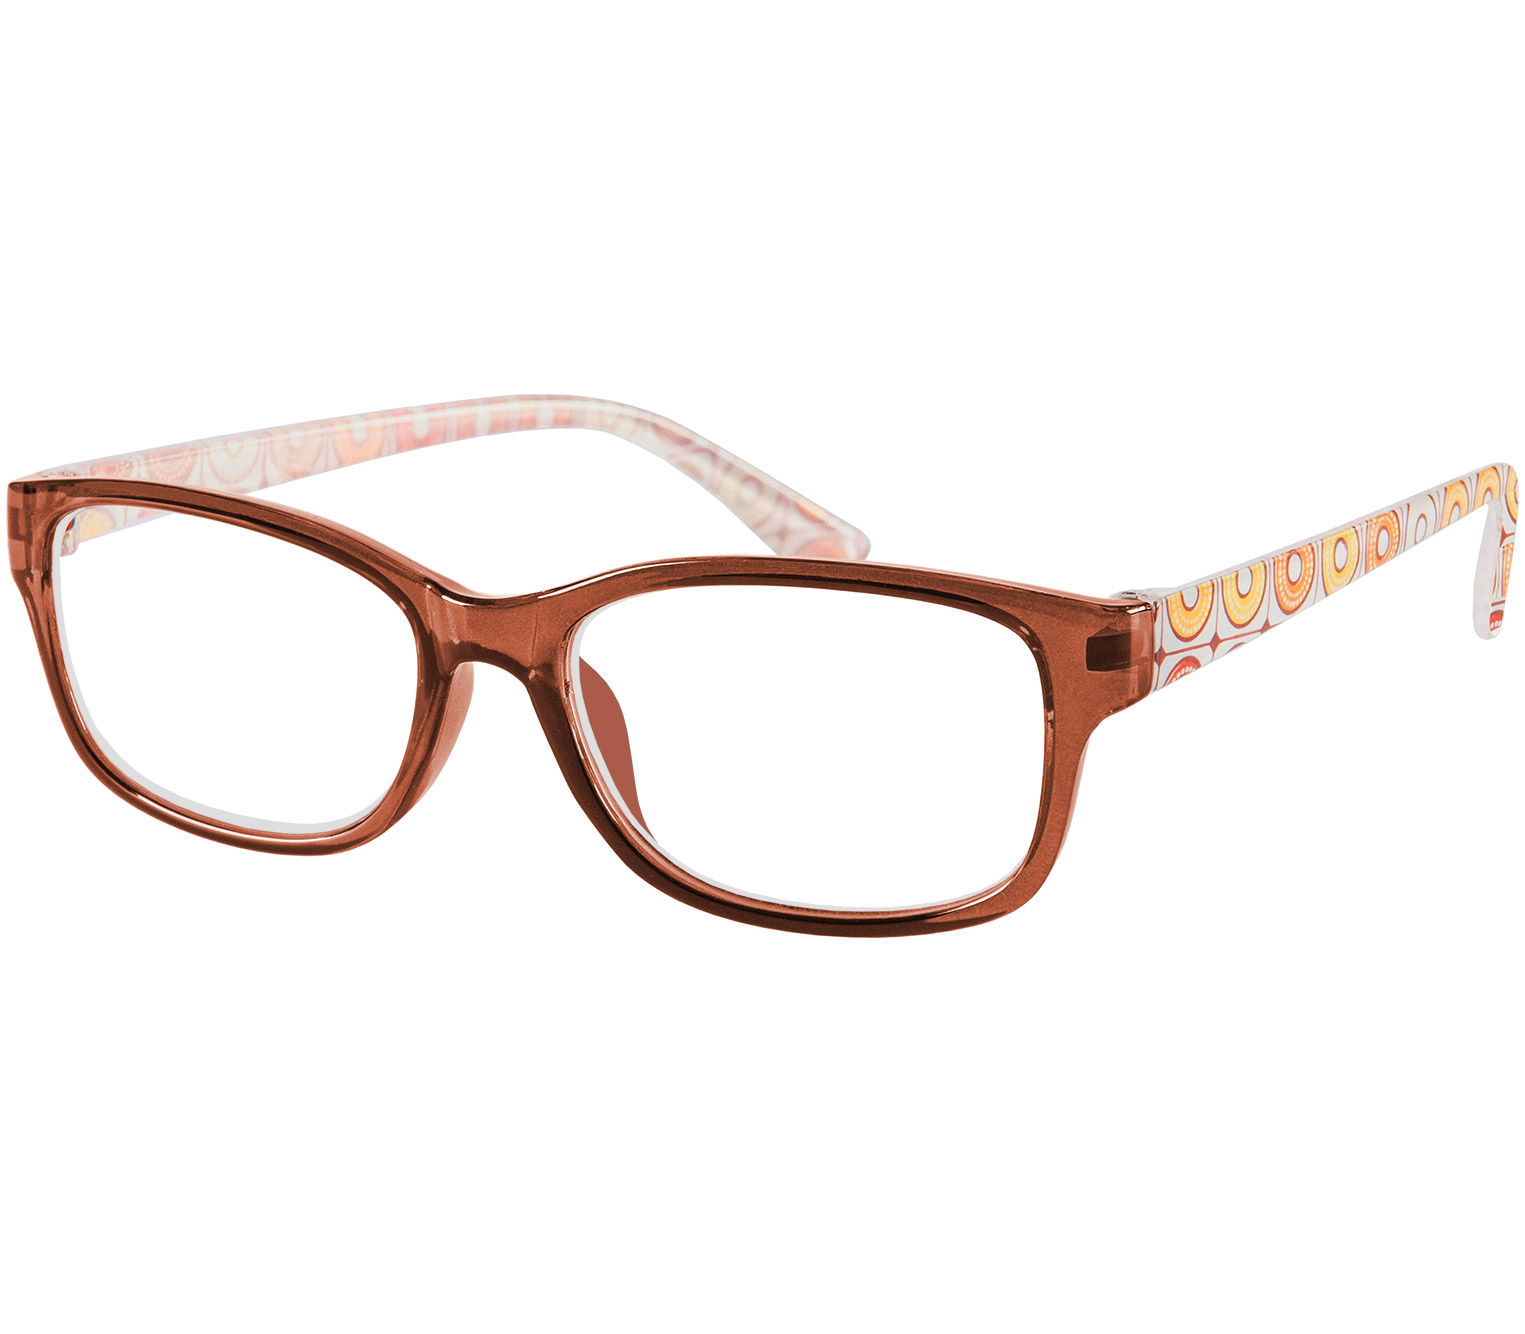 Main Image (Angle) - Scooter (Brown) Fashion Reading Glasses